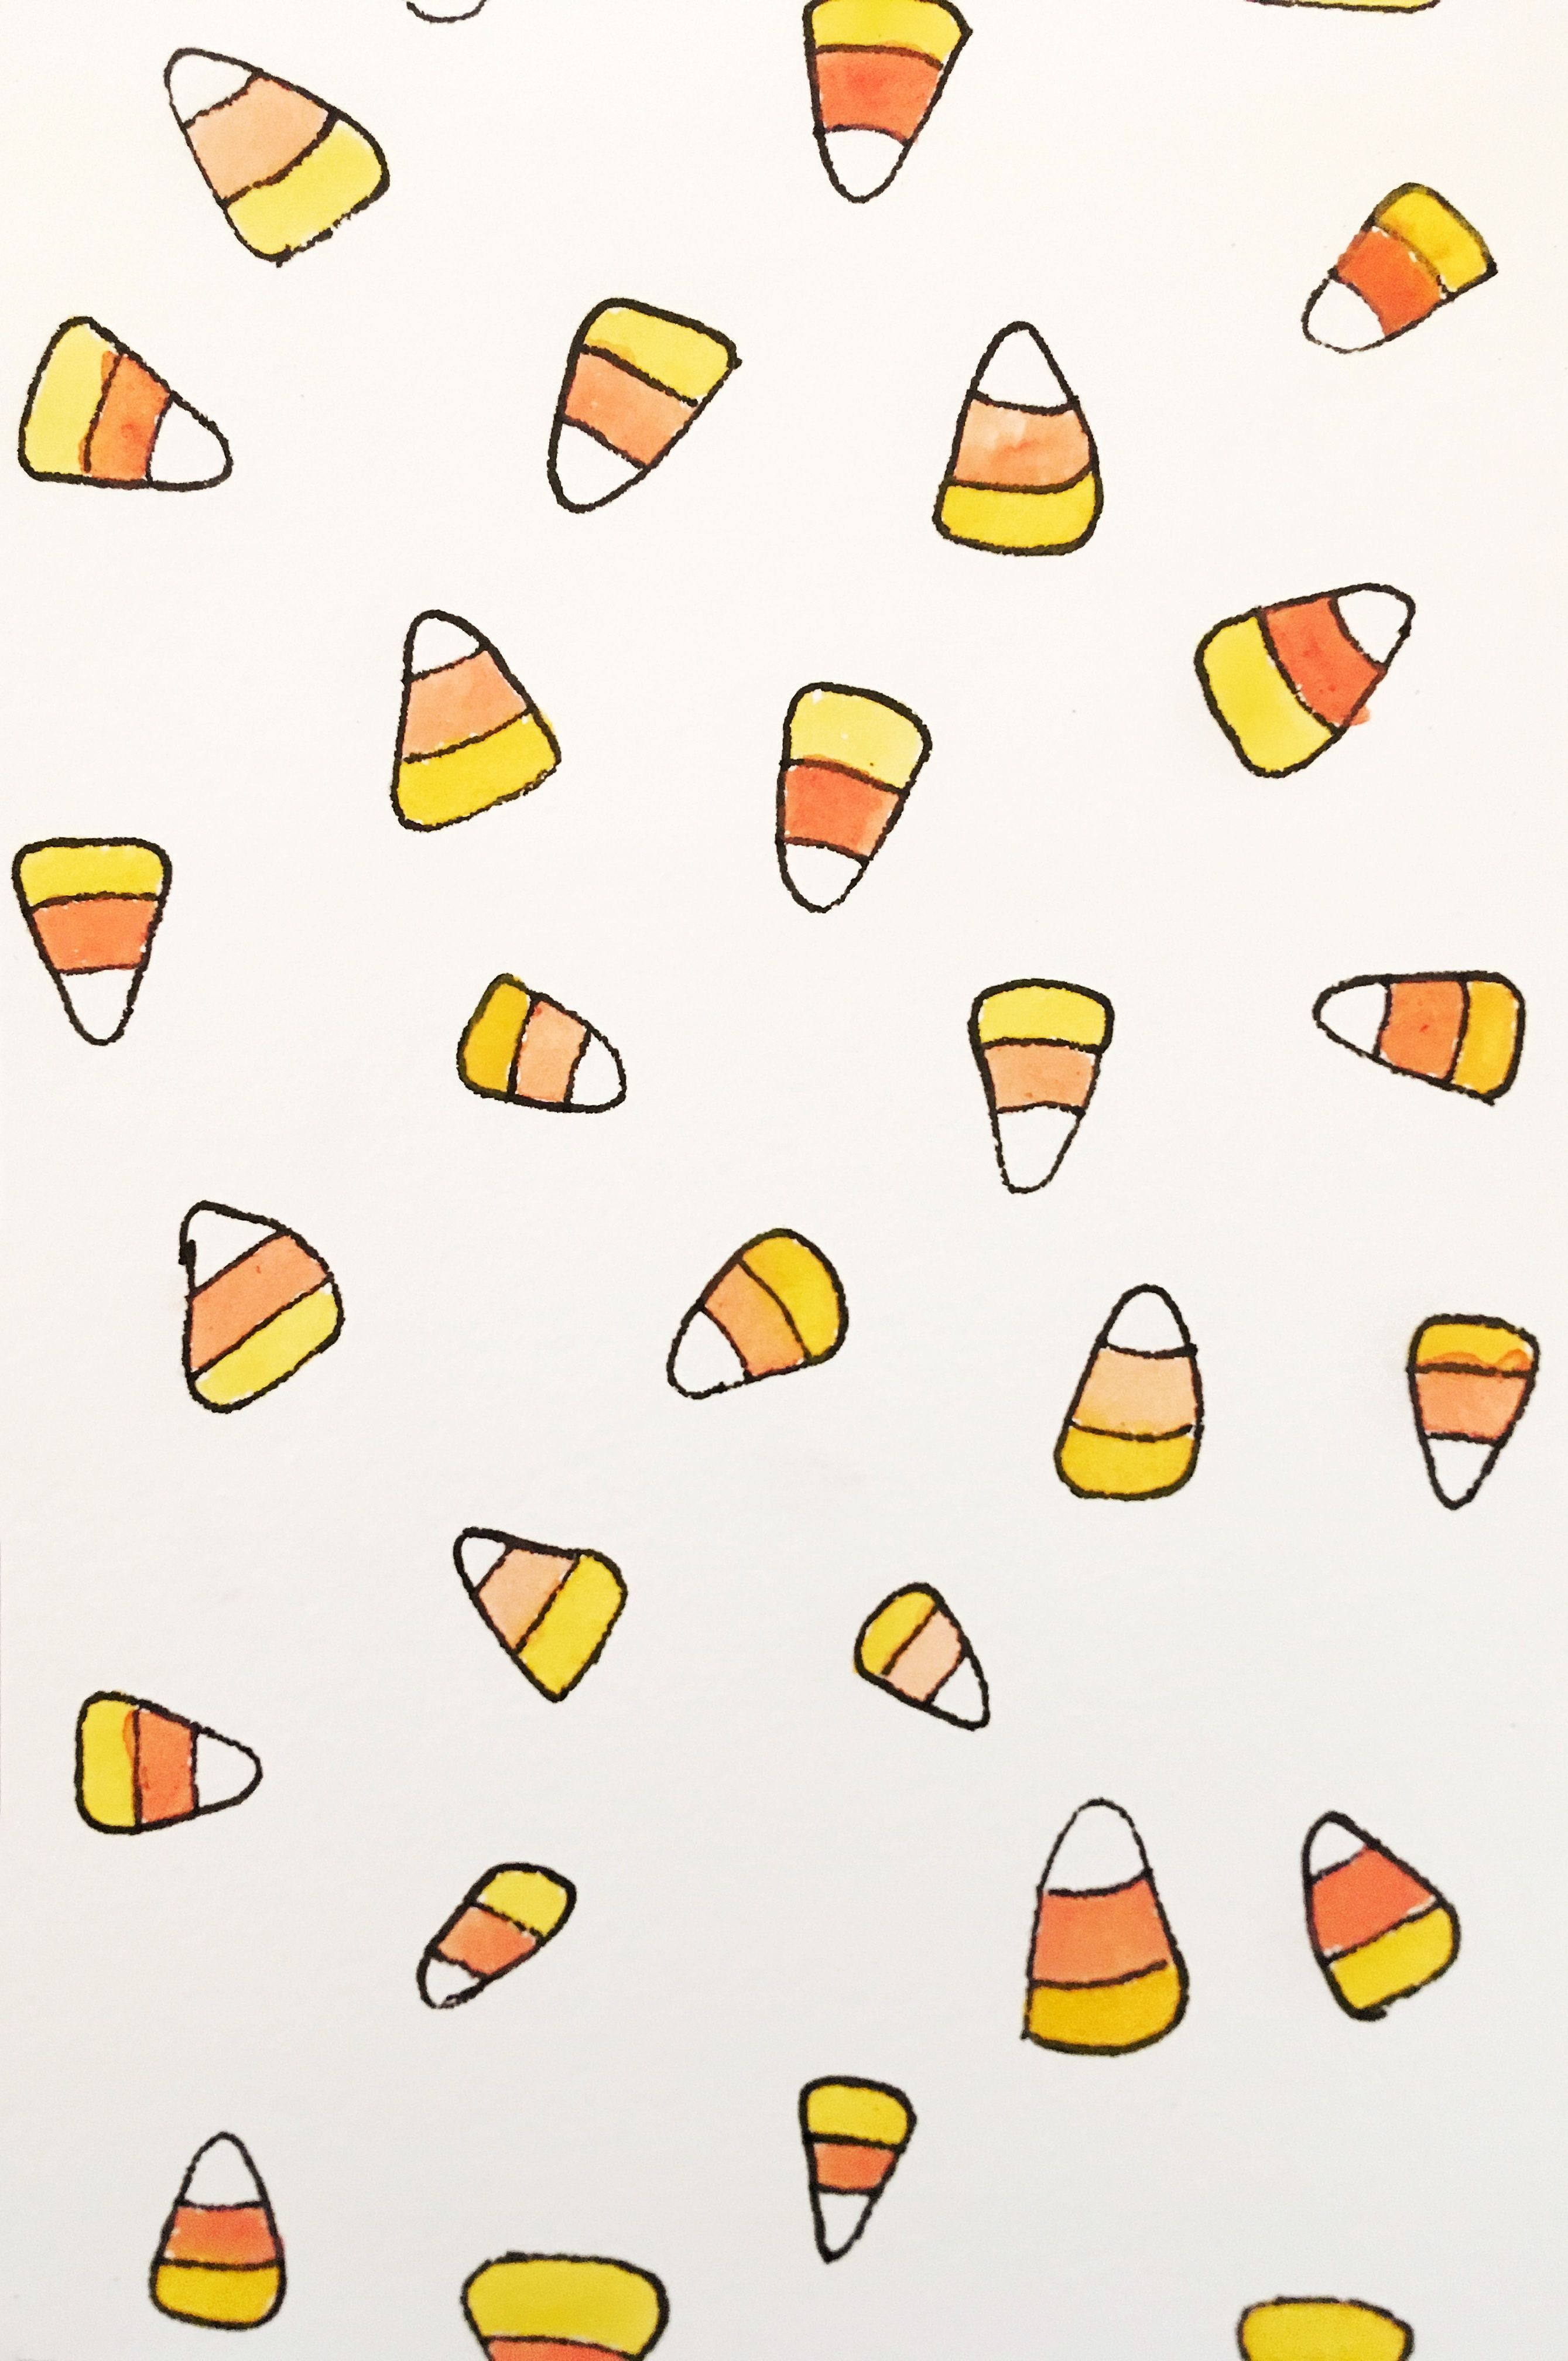 Candy corn iPhone watercolor wallpaper fallbackgrounds